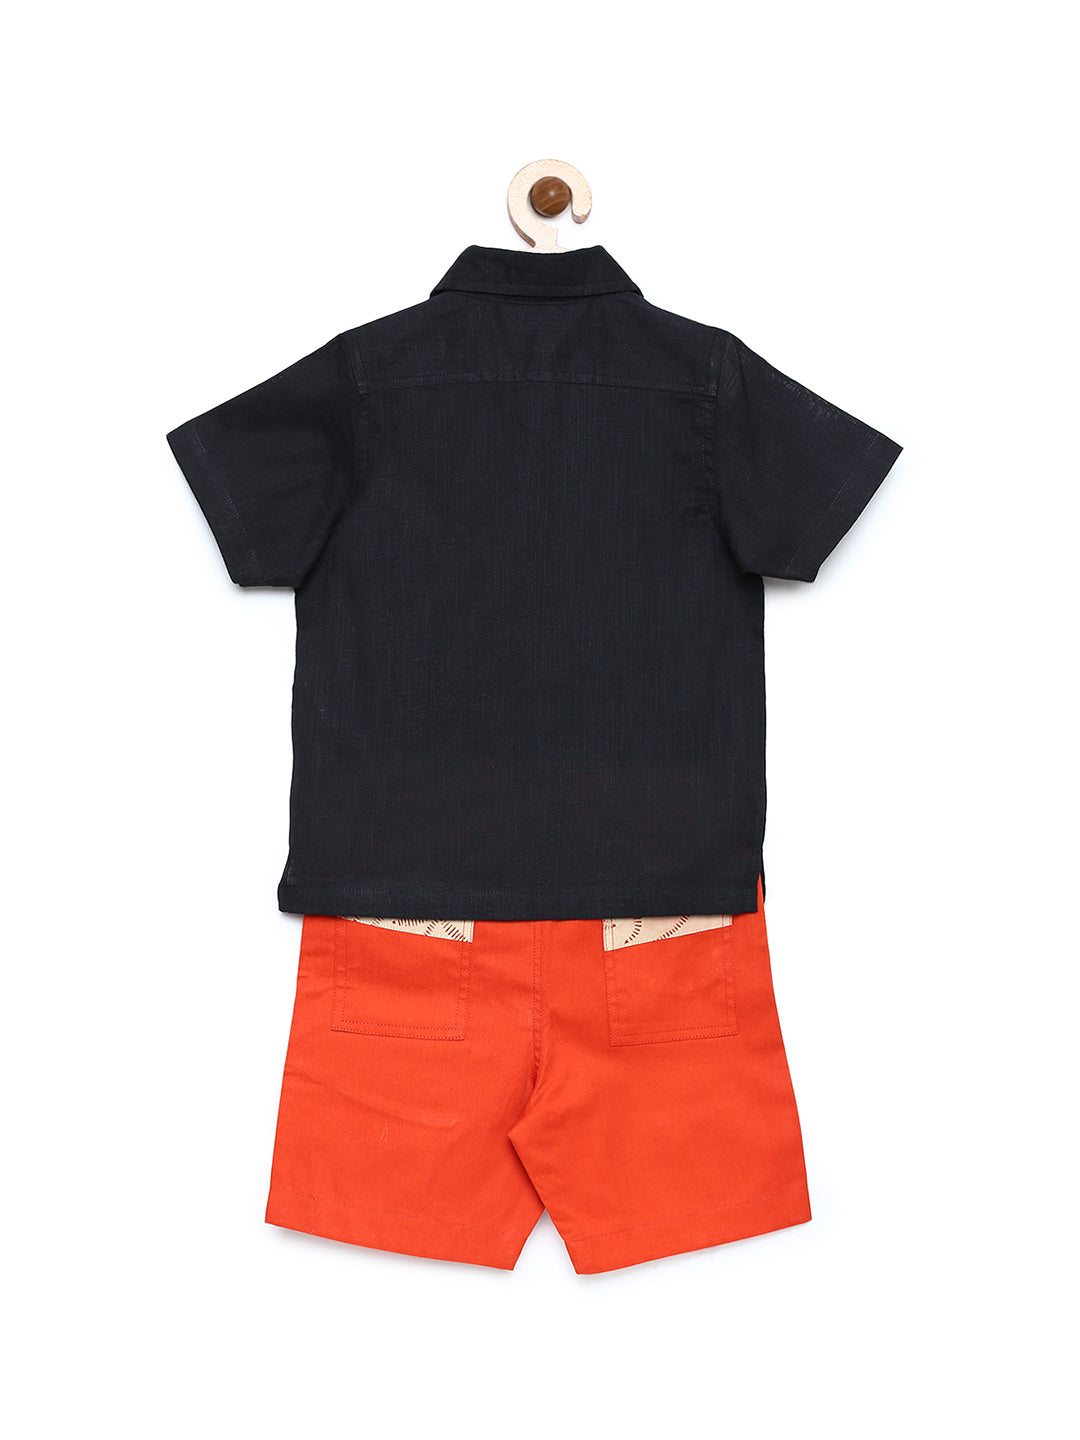 Black & Orange Solid Shirt with shorts